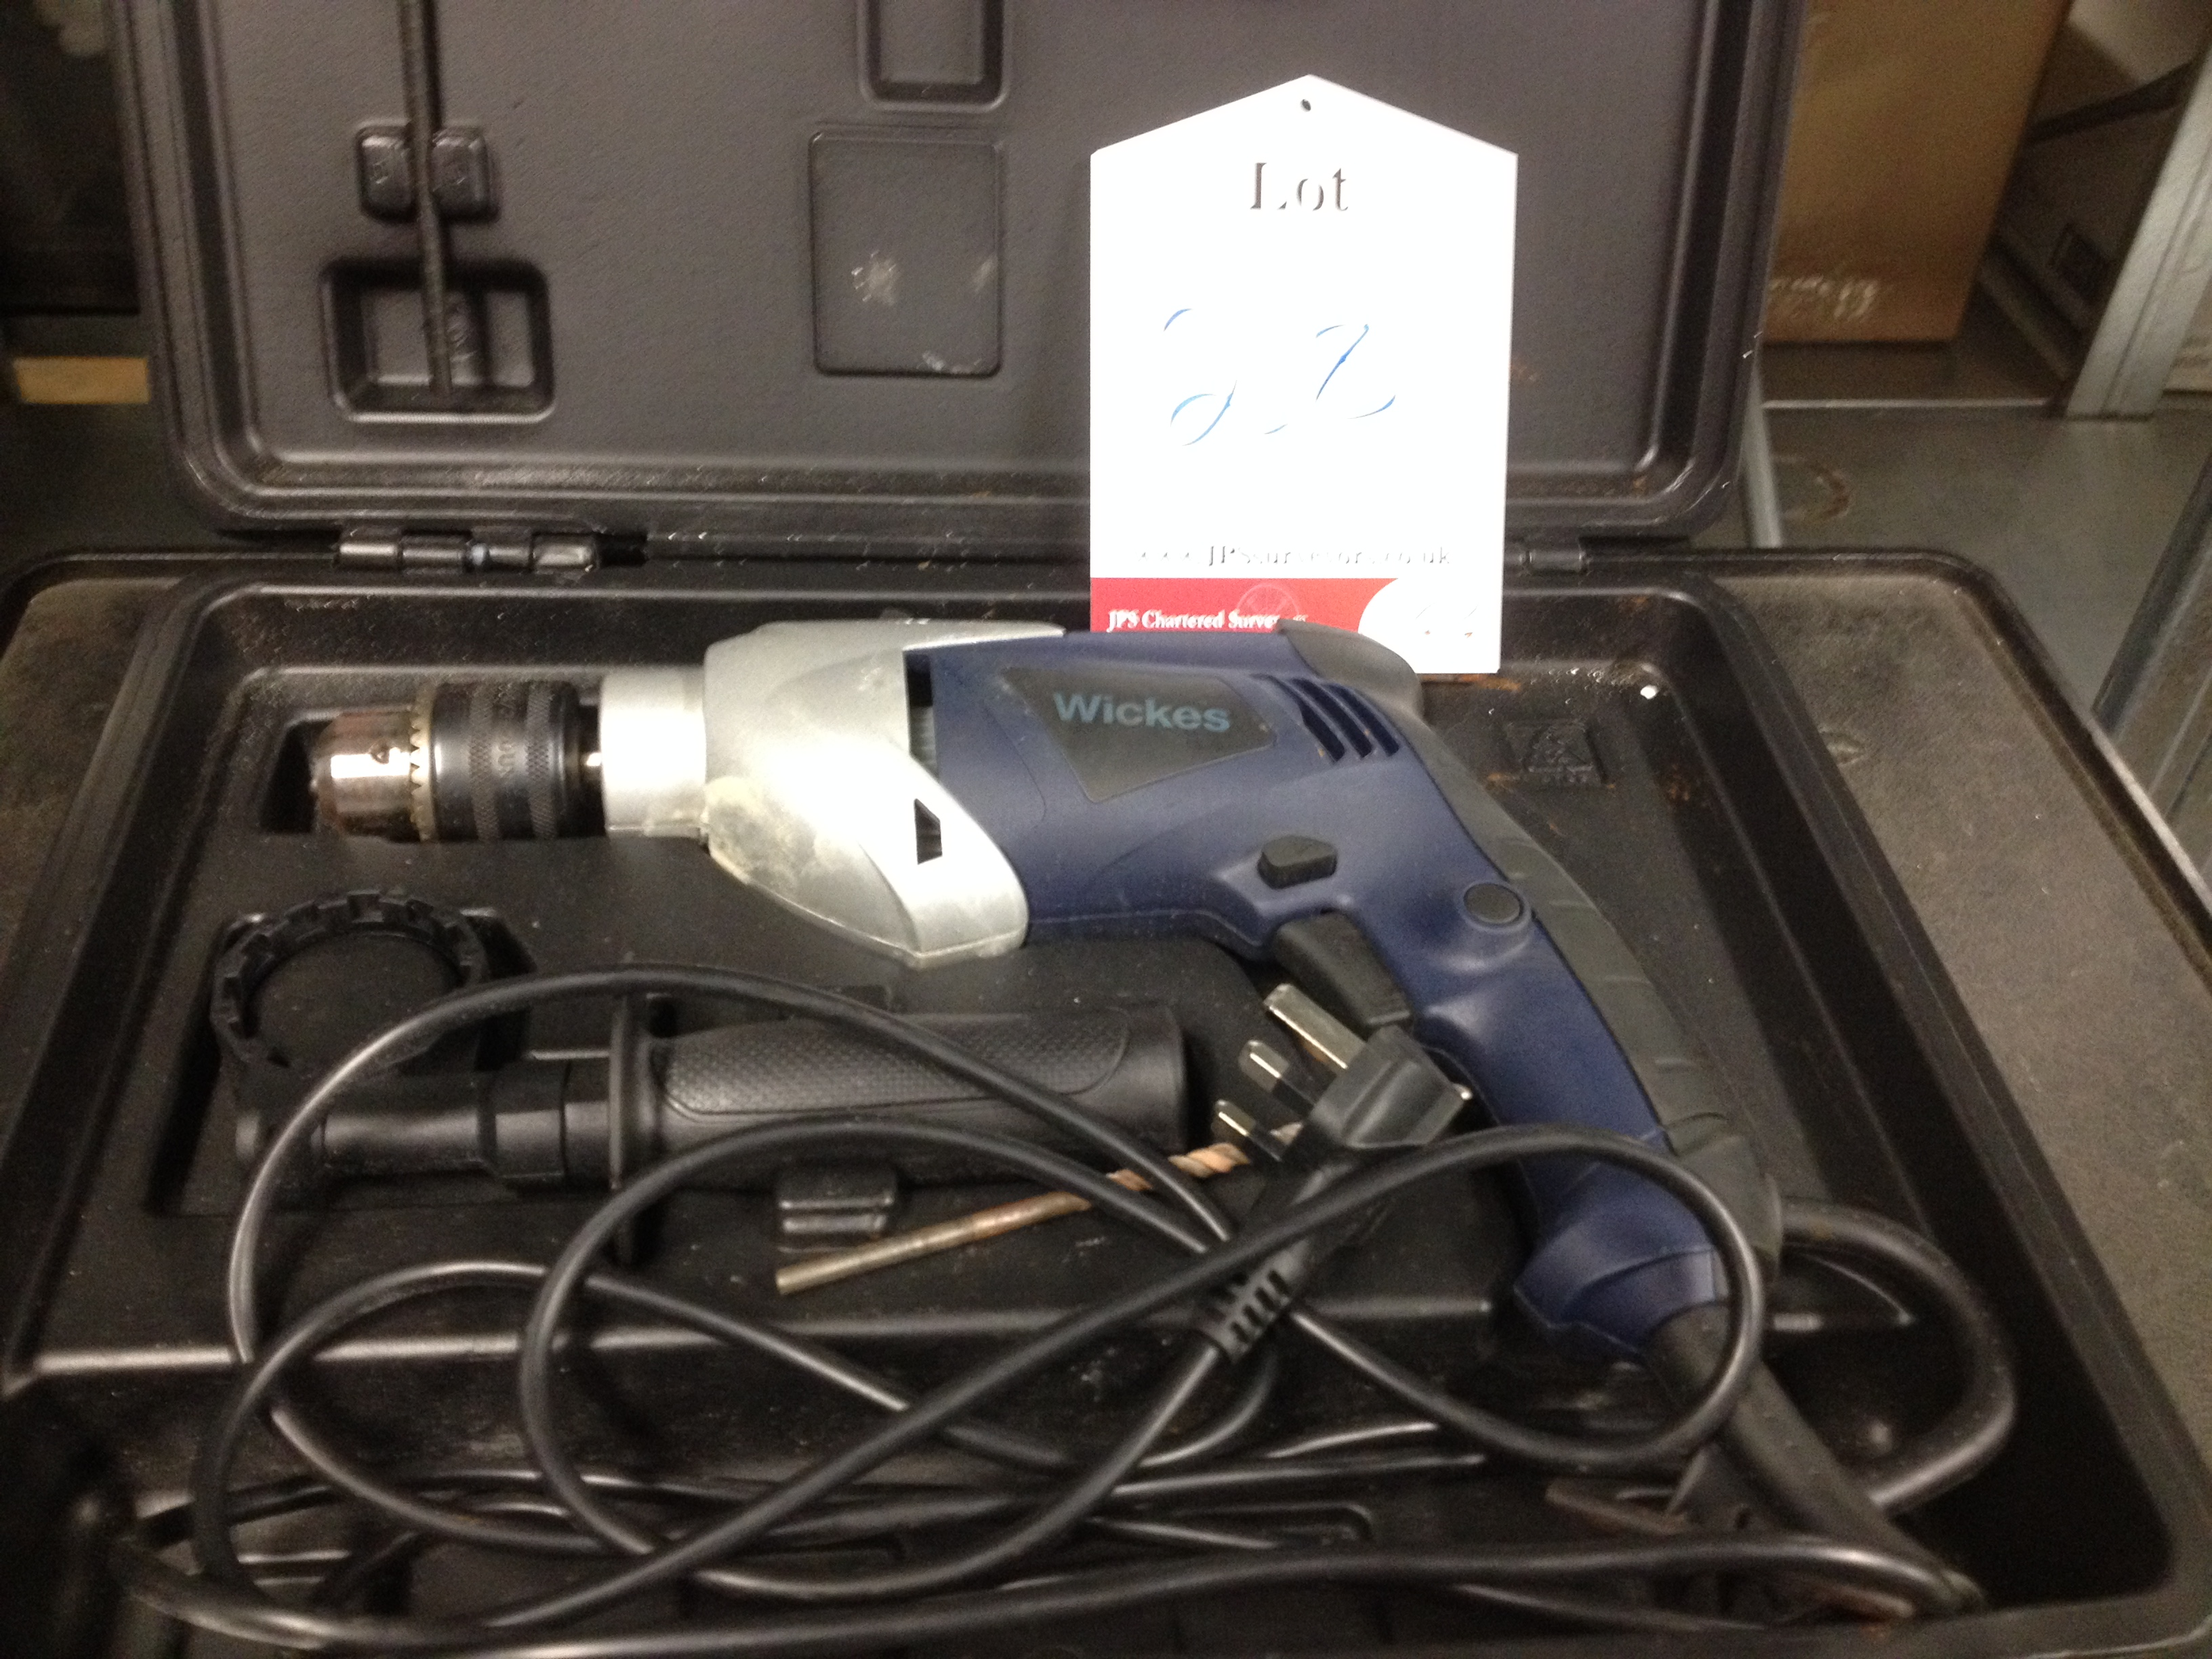 1 x Wickes Hammer drill with case